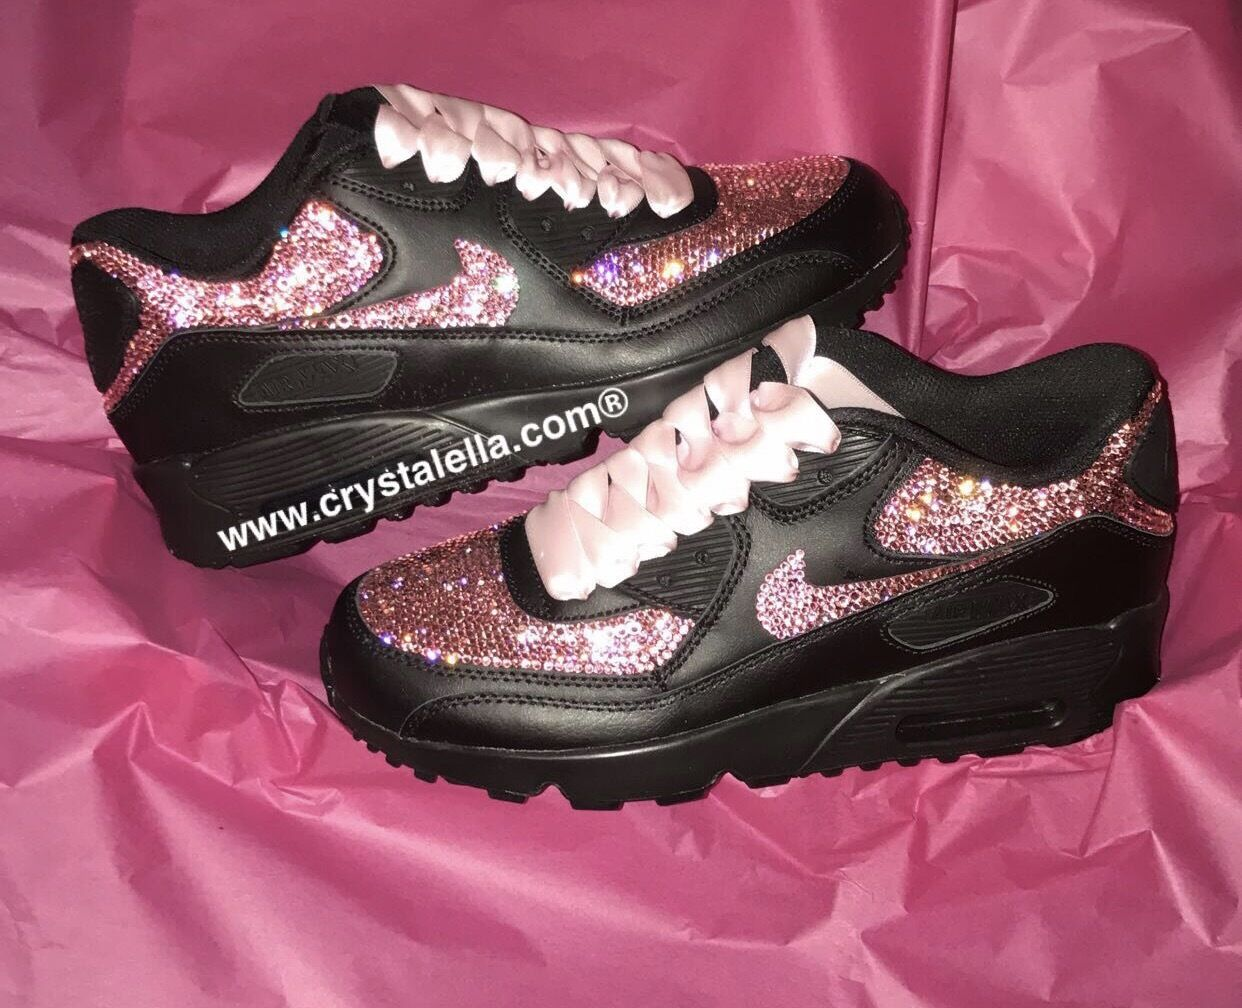 Nike Air Sparkling Max 90 in Noir Sparkling Air in rose Swarovski Crystals 19b39f